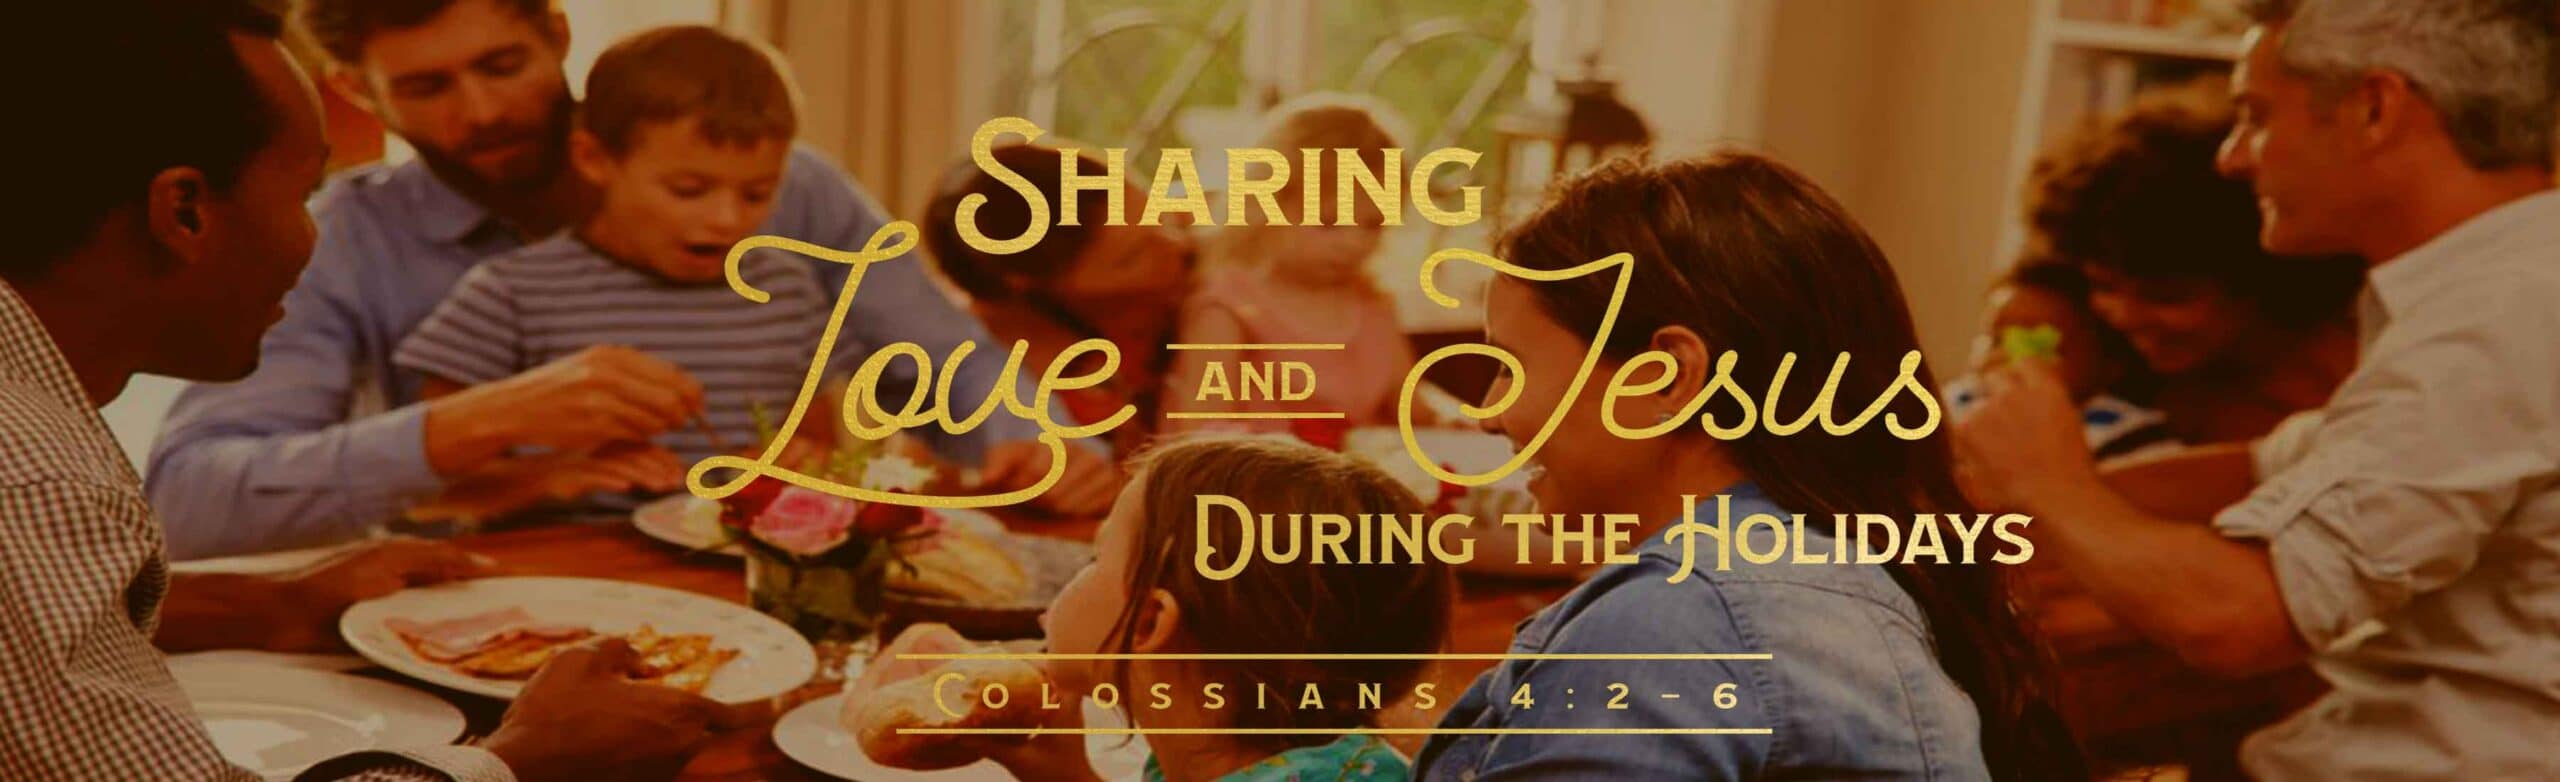 Sharing-Jesus-holiday-3600x1100-low-res